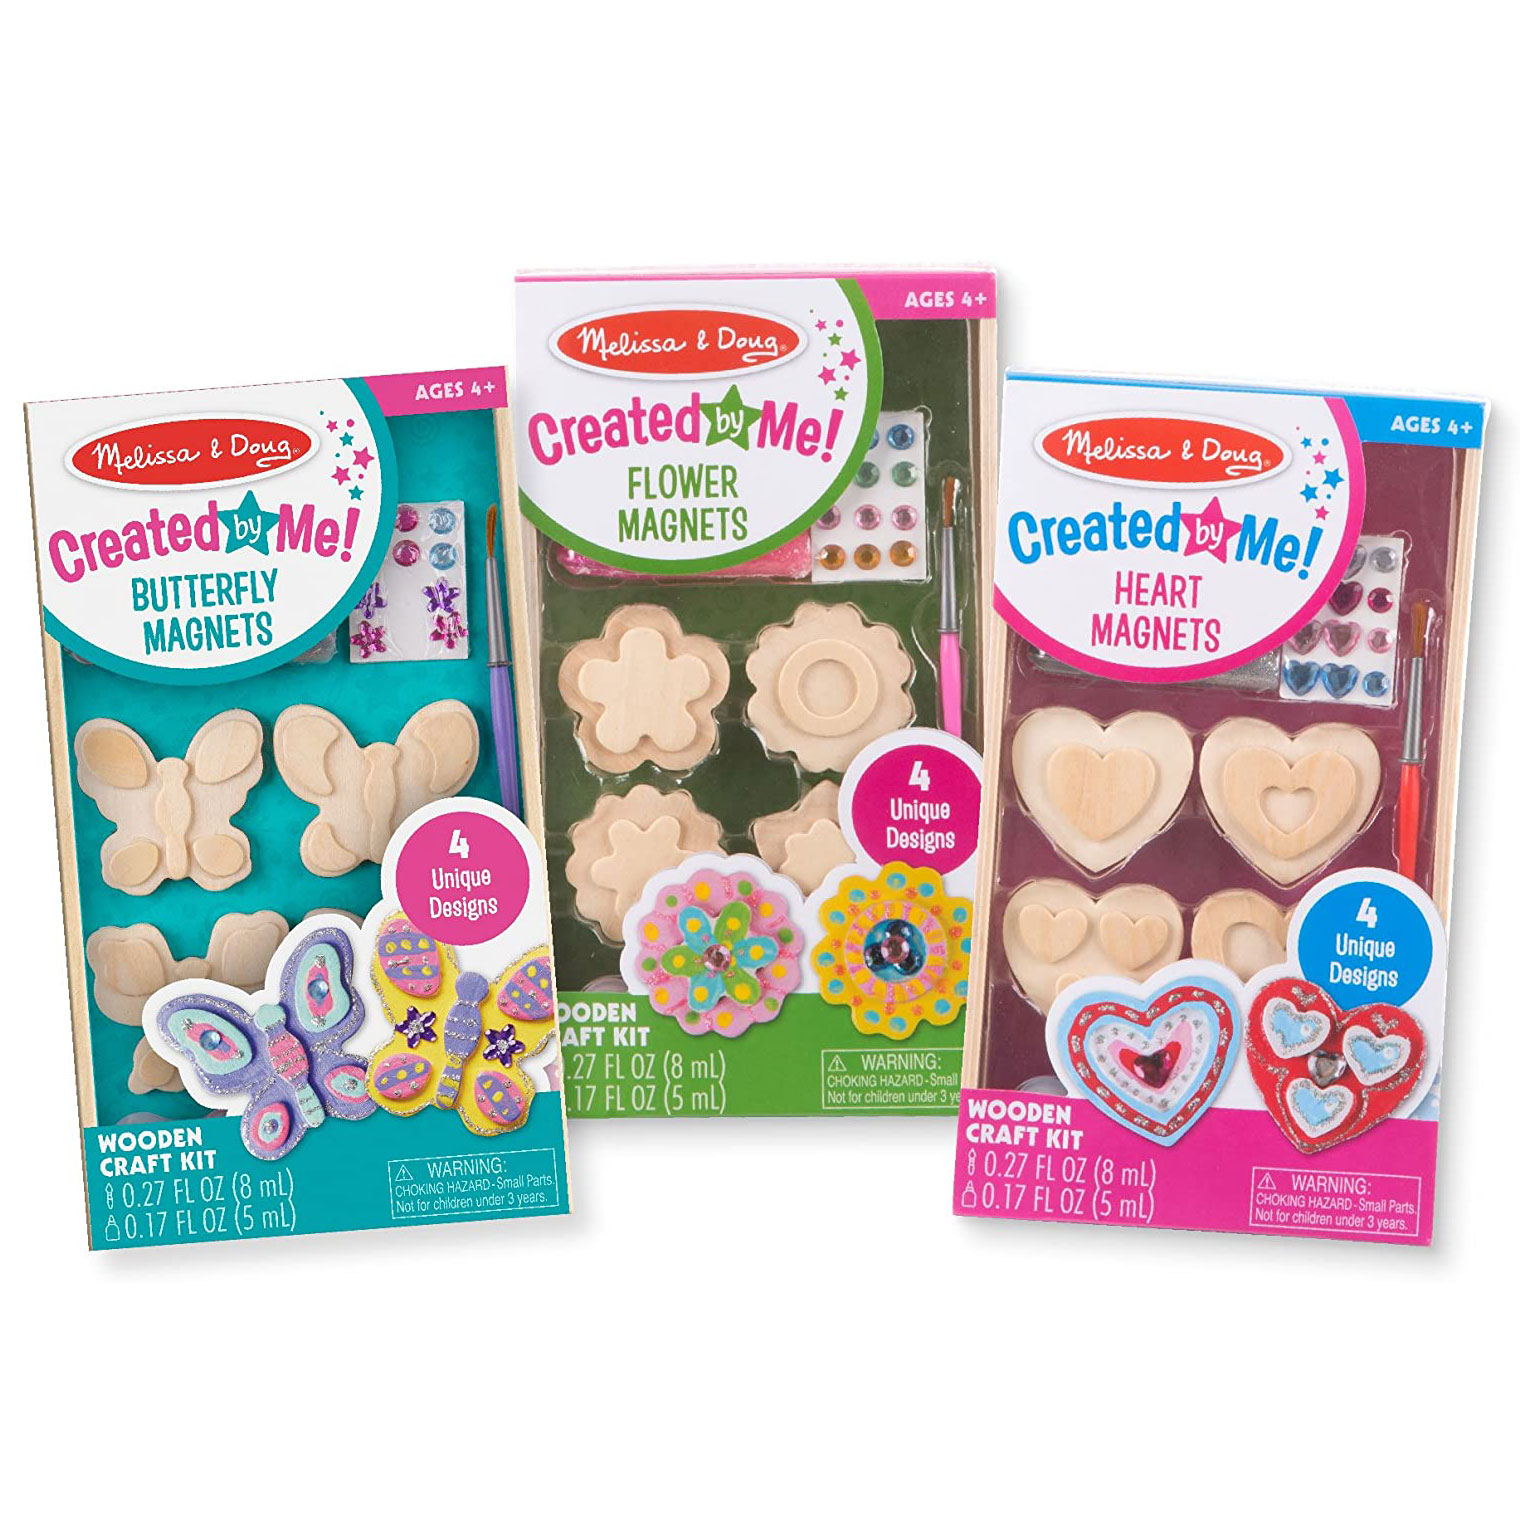 Melissa & Doug Created by Me! Wooden Heart Magnets Craft Kit